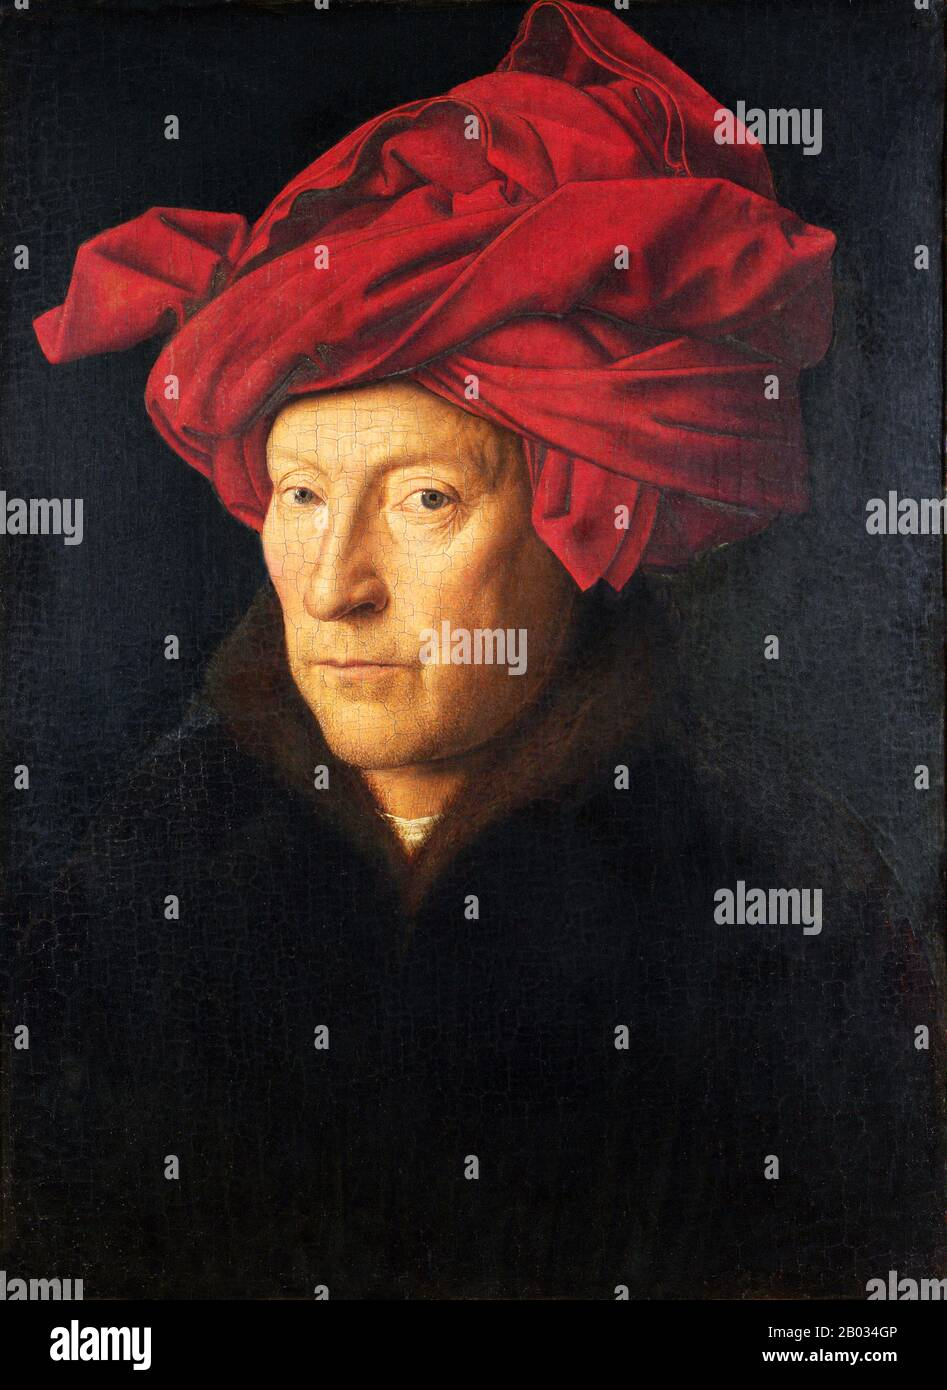 Jan van Eyck was an Early Netherlandish painter active in Bruges and one of the most significant Northern Renaissance artists of the 15th century.  In addition to the Ghent Altarpiece and the illuminated miniatures of the Turin-Milan Hours, about 20 surviving paintings are confidently attributed to him, all dated between 1432 and 1439. Stock Photo